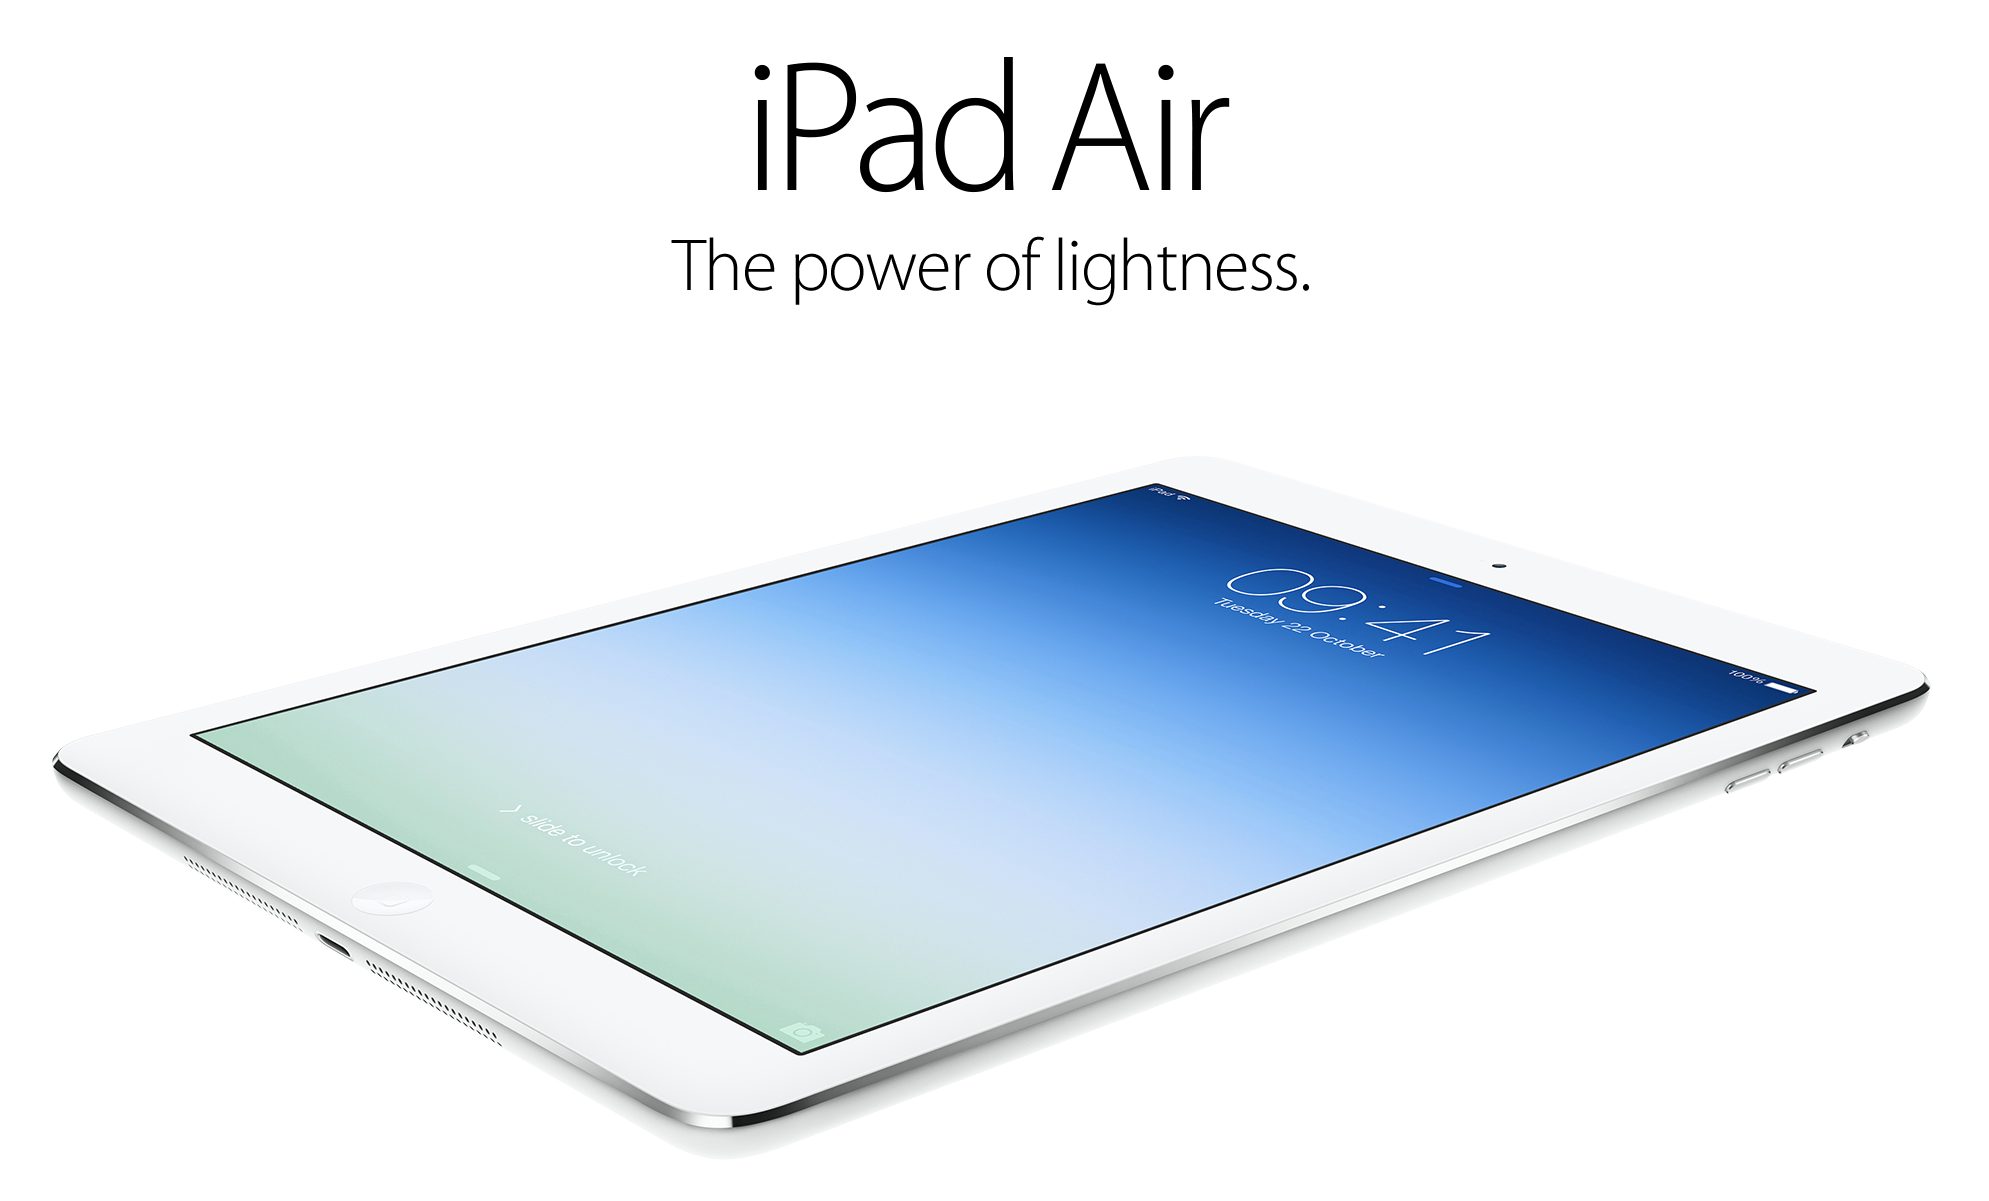 Thoughts on new Apple iPad Air, MacBook Pro, Mac Pro and OS X Mavericks